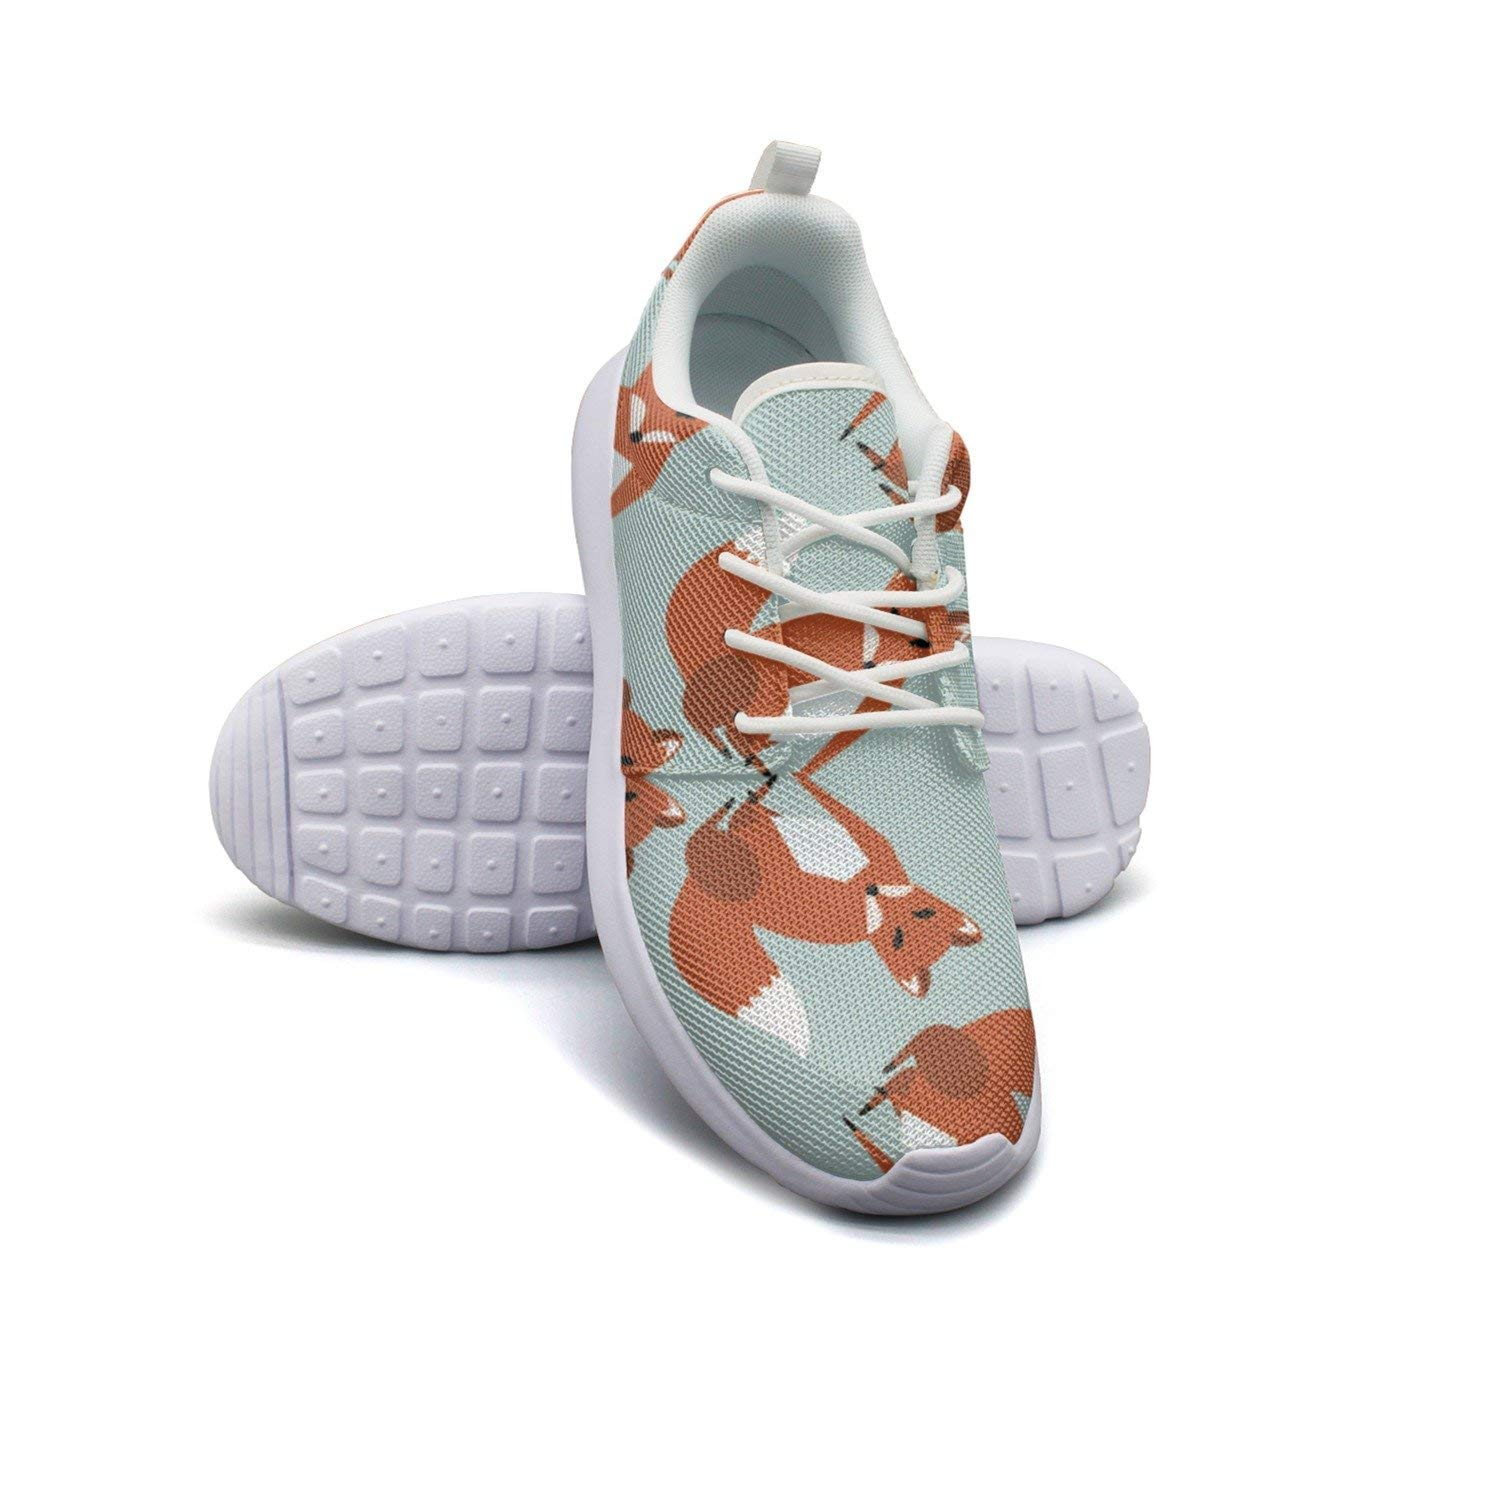 Kids Sneakers camouflage pink Custom Slip-On Shallow Loafers Elastic Sport Flyknit Shoes